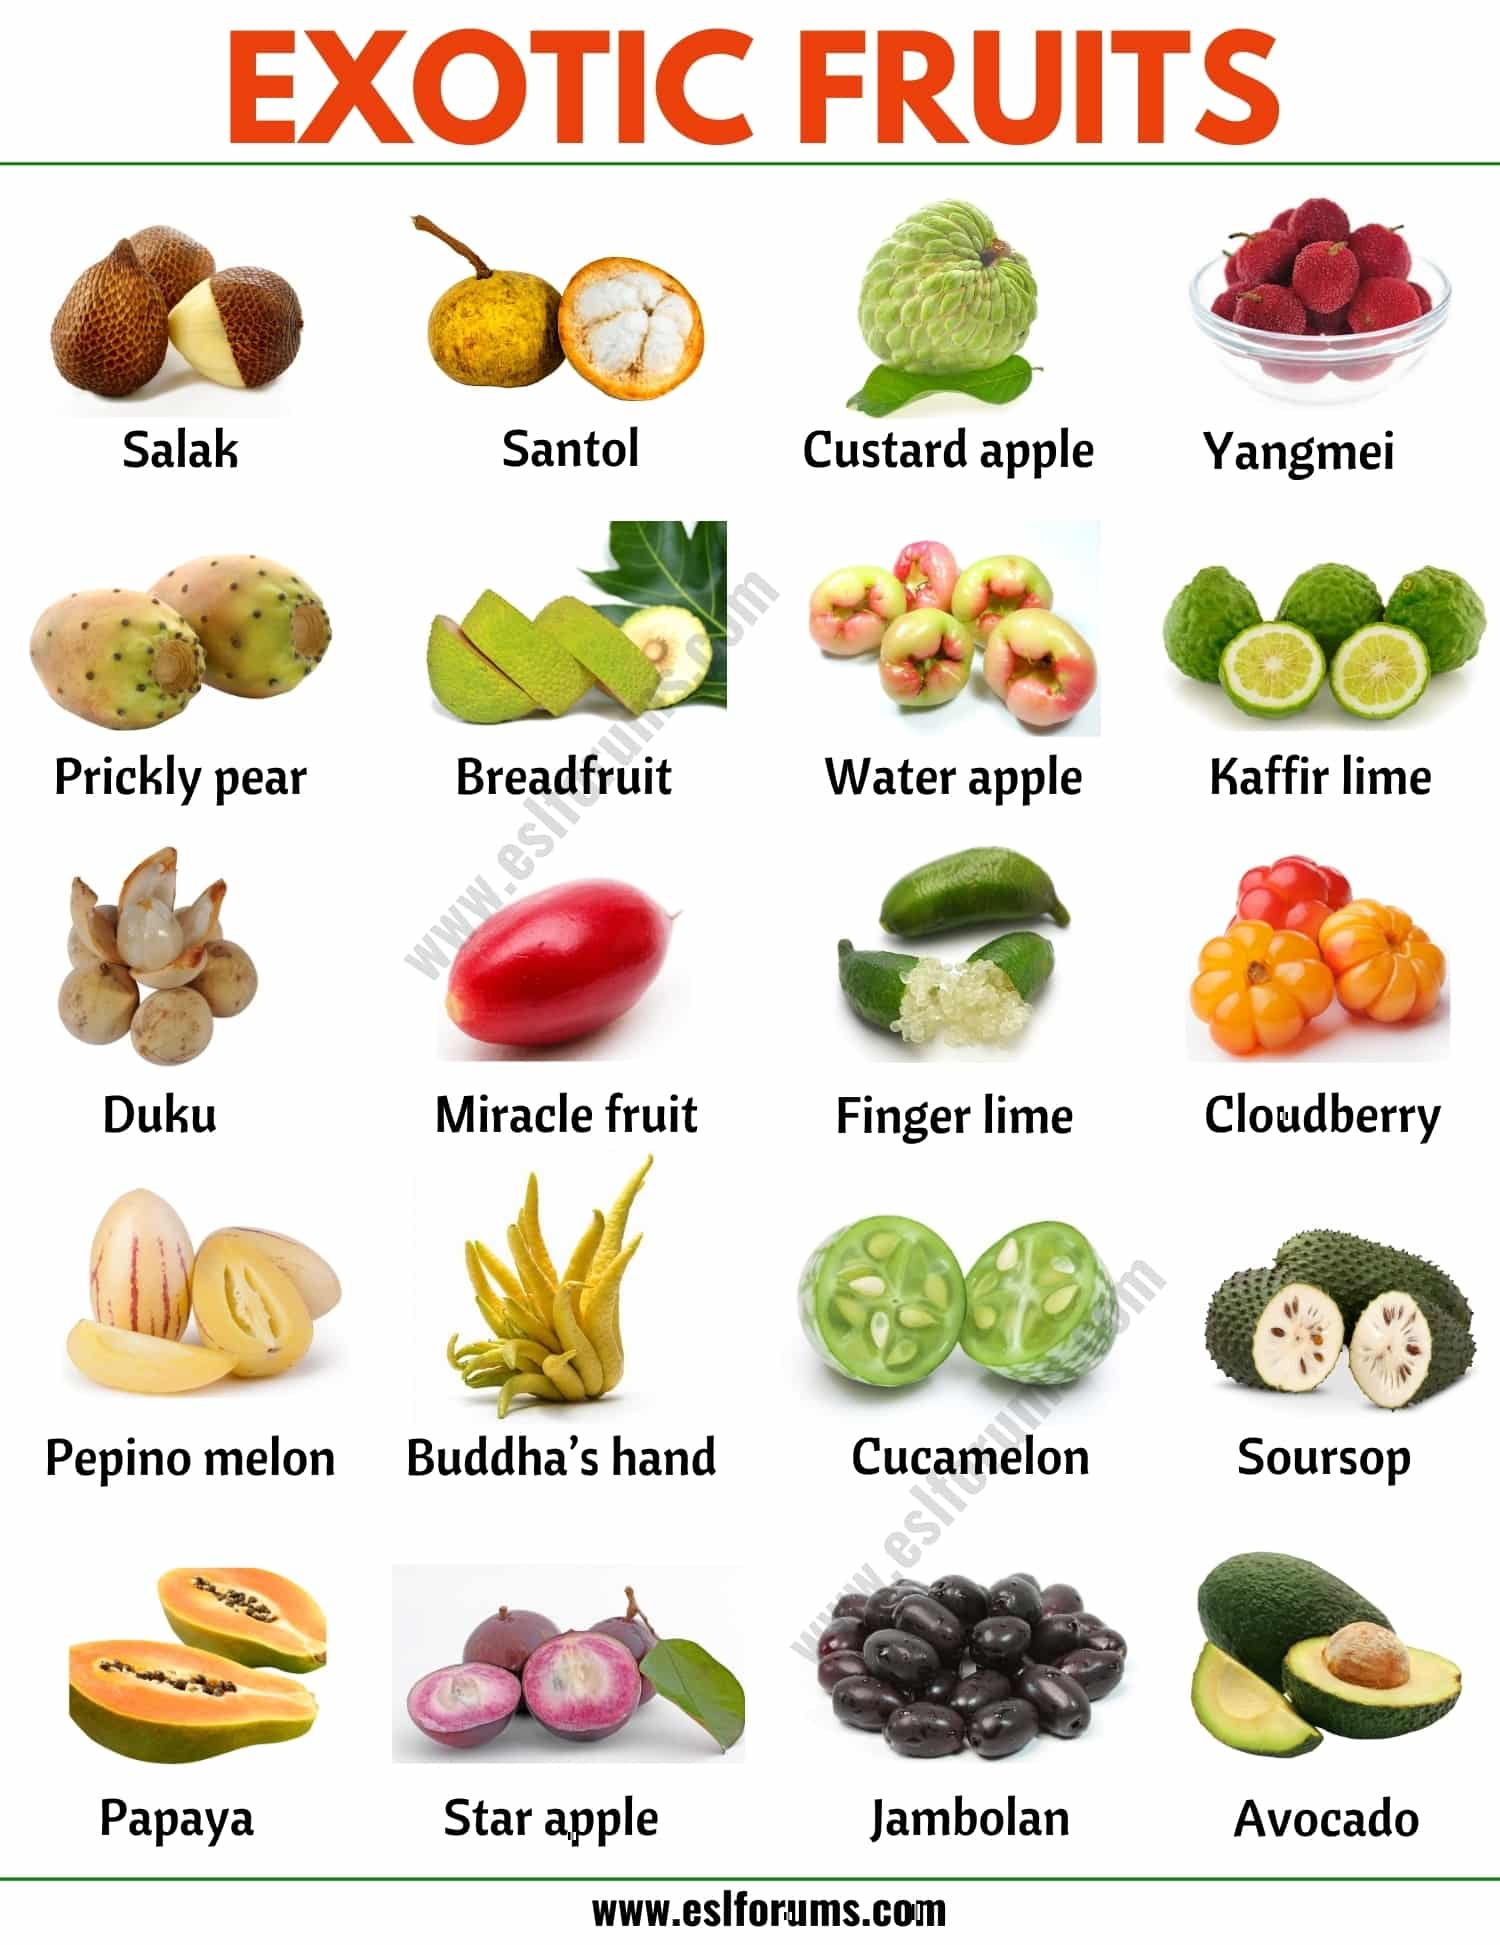 Exotic Fruits: List of 45+ Exotic Fruits from All Around the World